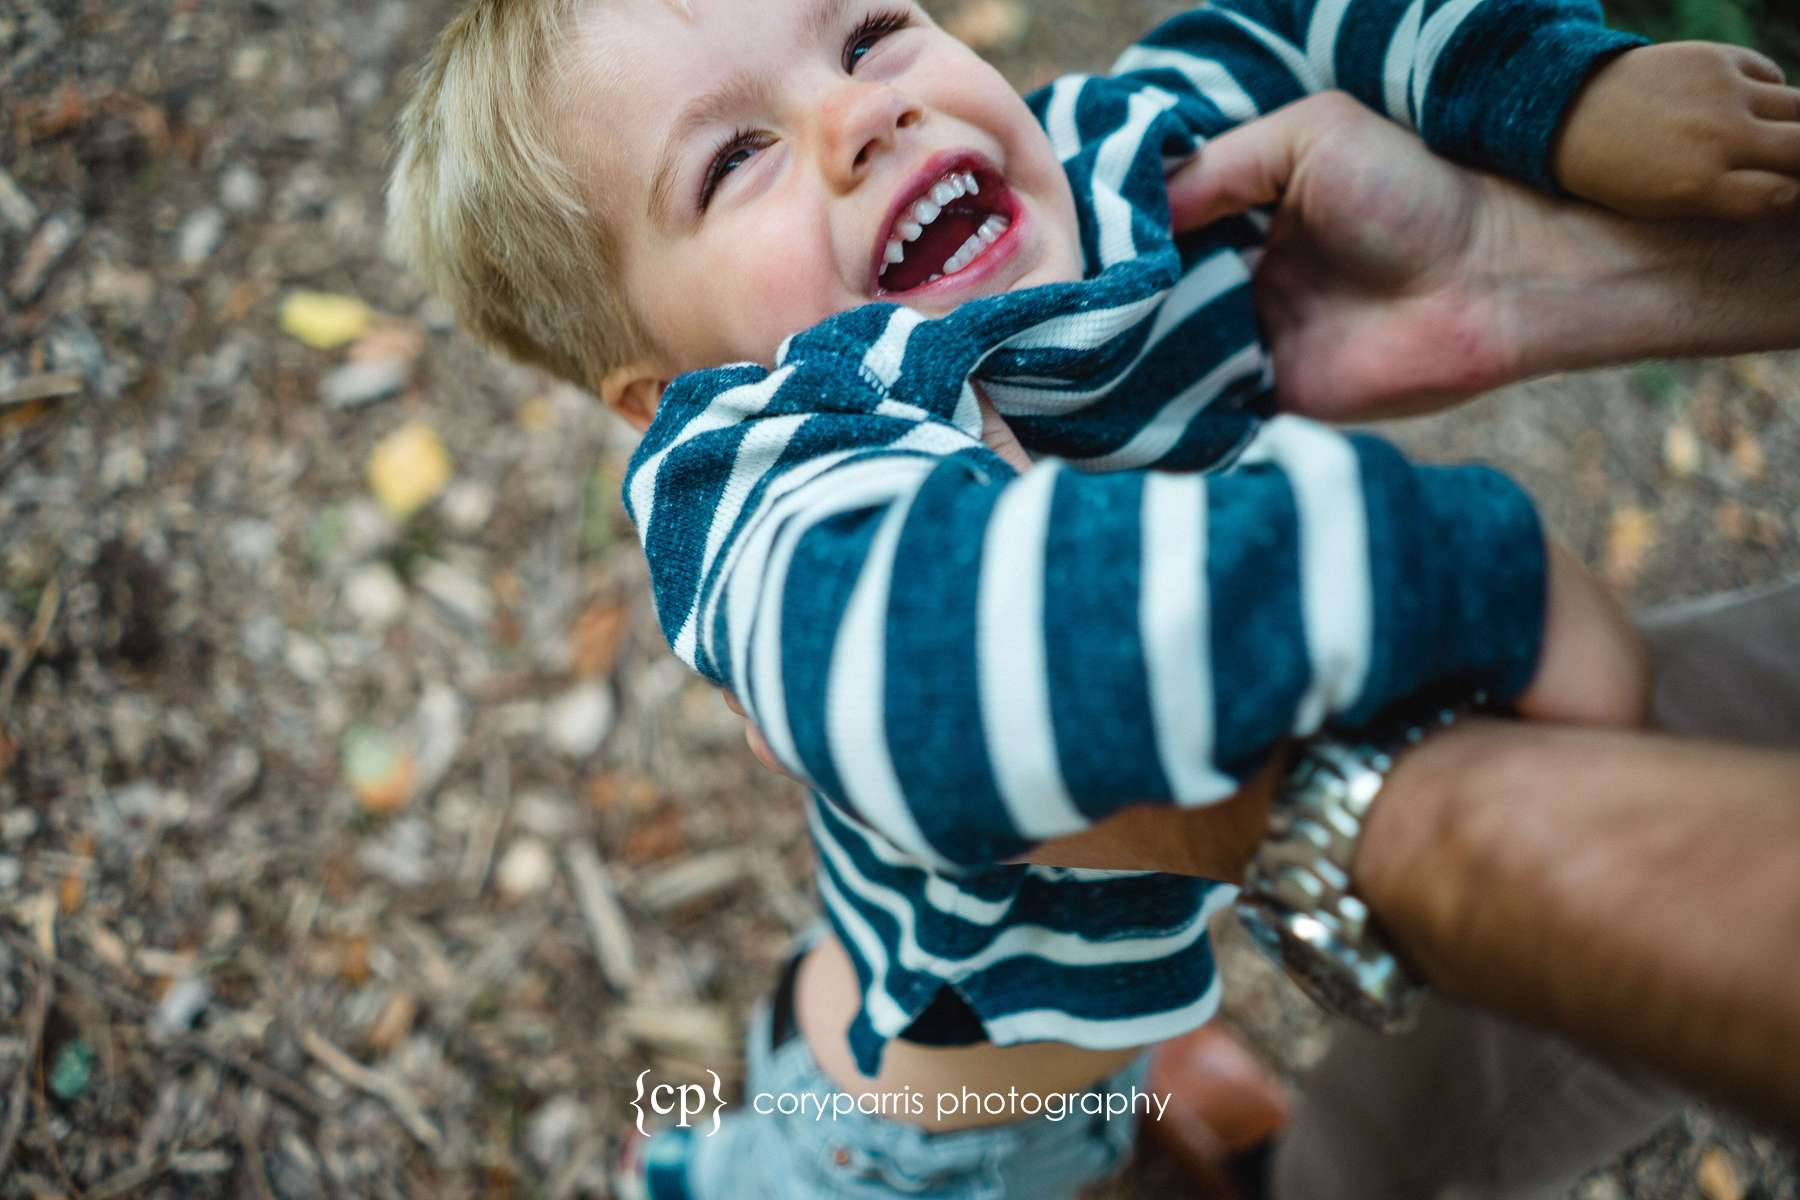 Laughing little boy - kid and family portraits at Washington Park Arboretum in Seattle